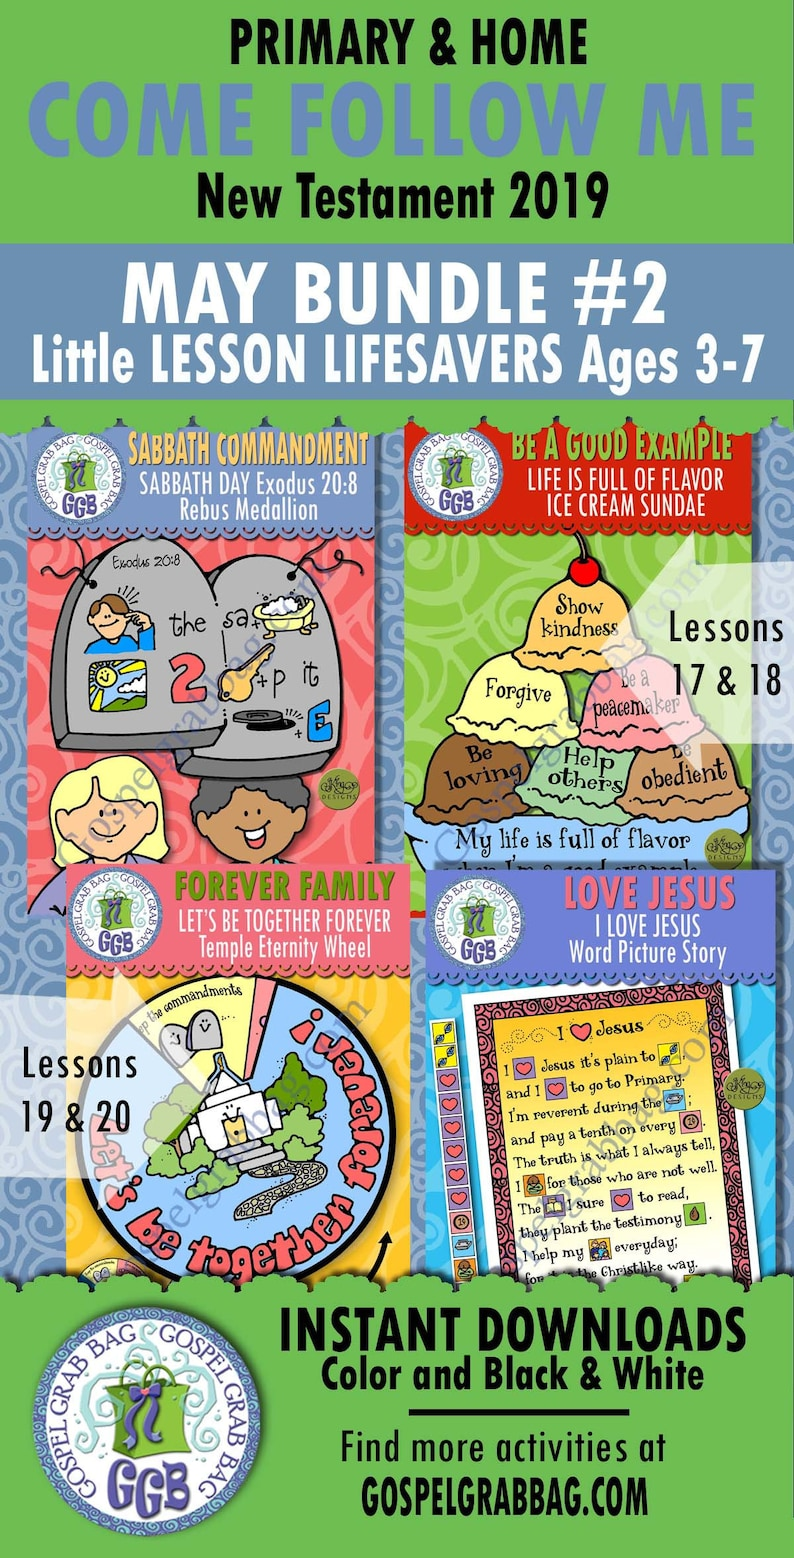 2019 MAY Ages 3-7 Come Follow Me Lesson 17-20 Bundle 2 Primary-Home:  Sabbath rebus, ice cream sundae, temple eternity wheel, Jesus story